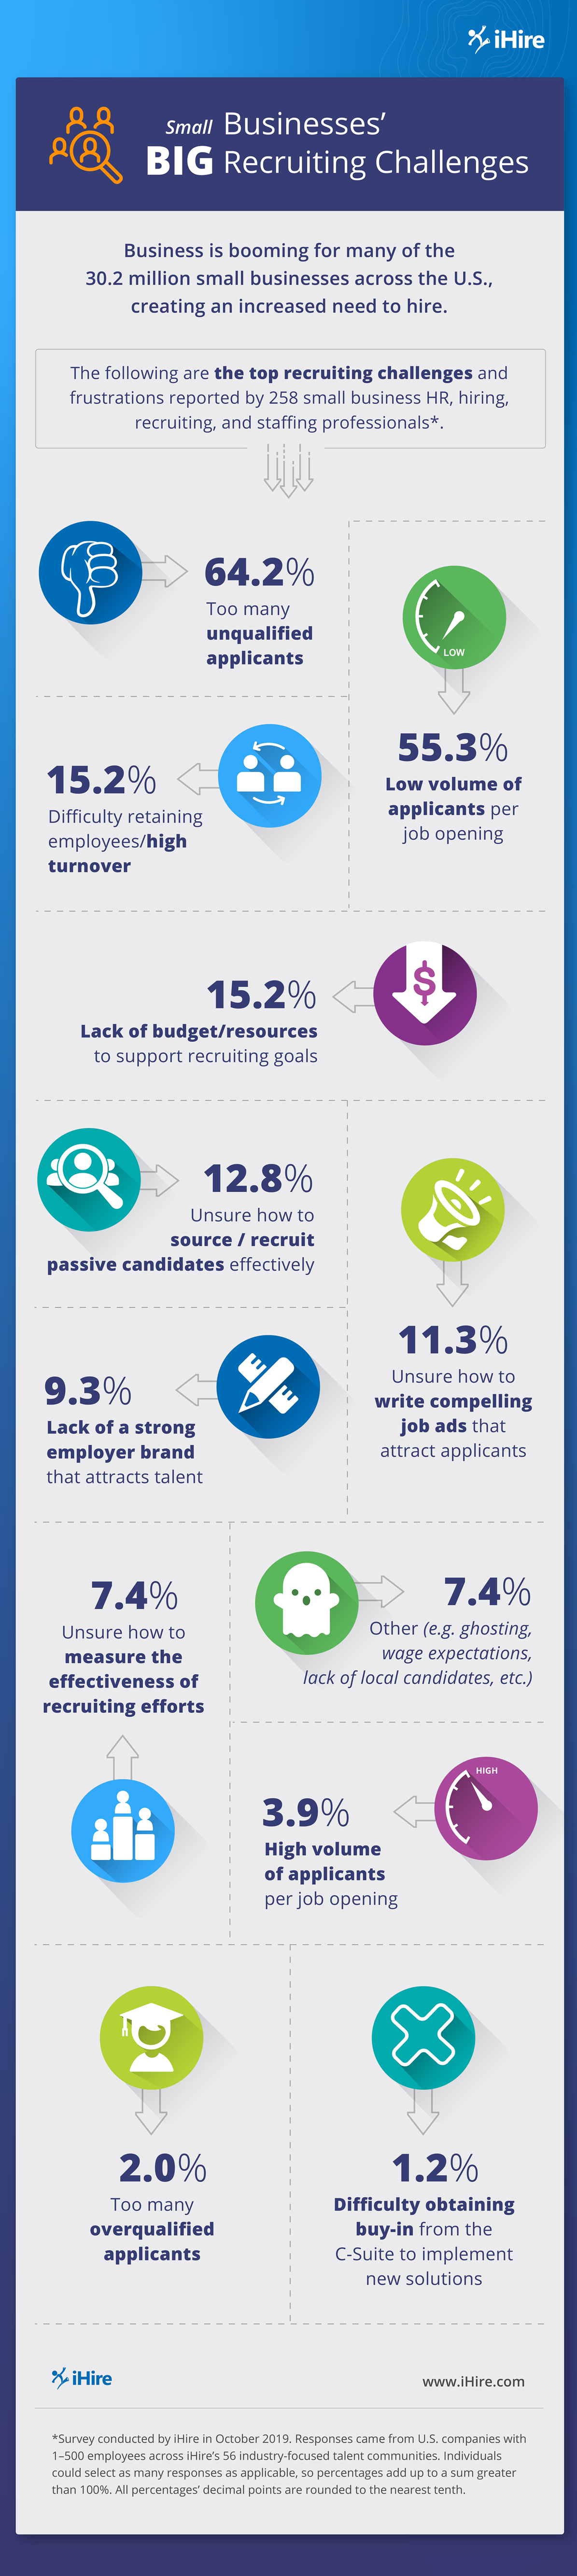 small business hiring challenges infographic